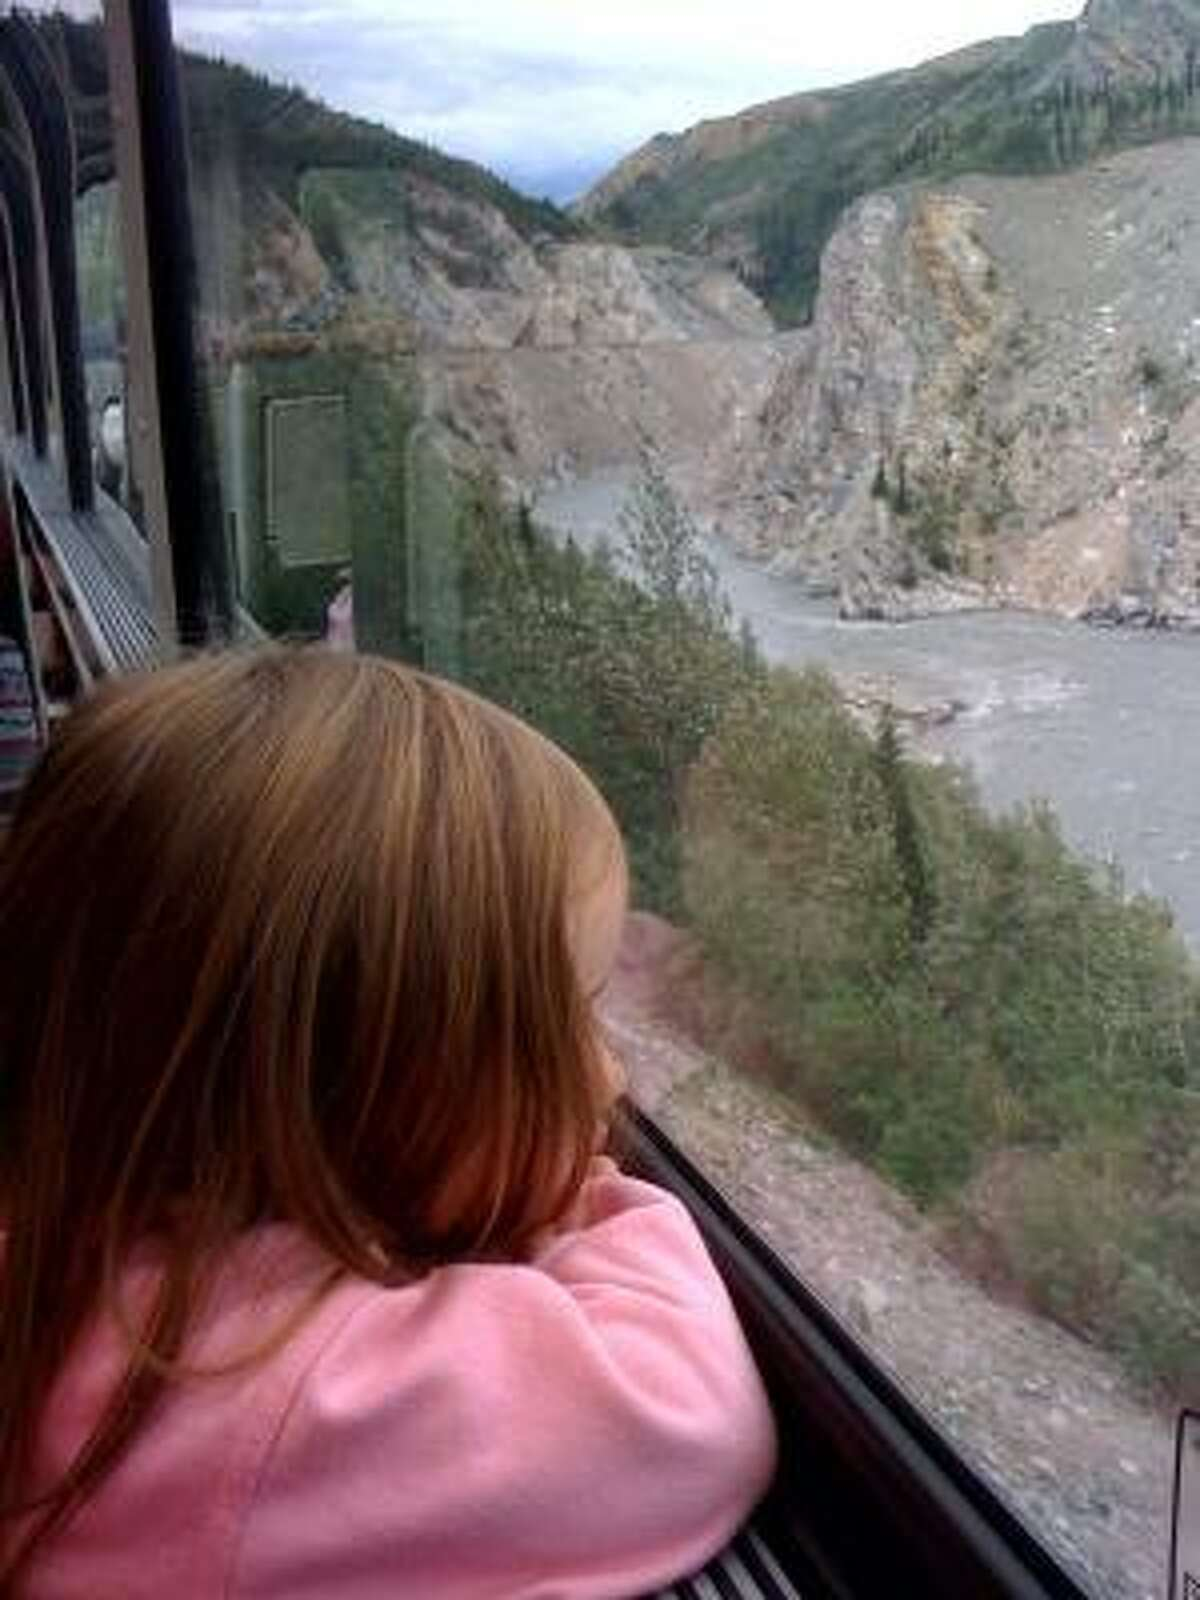 Train travel is much easier than car travel for our four-year-old.